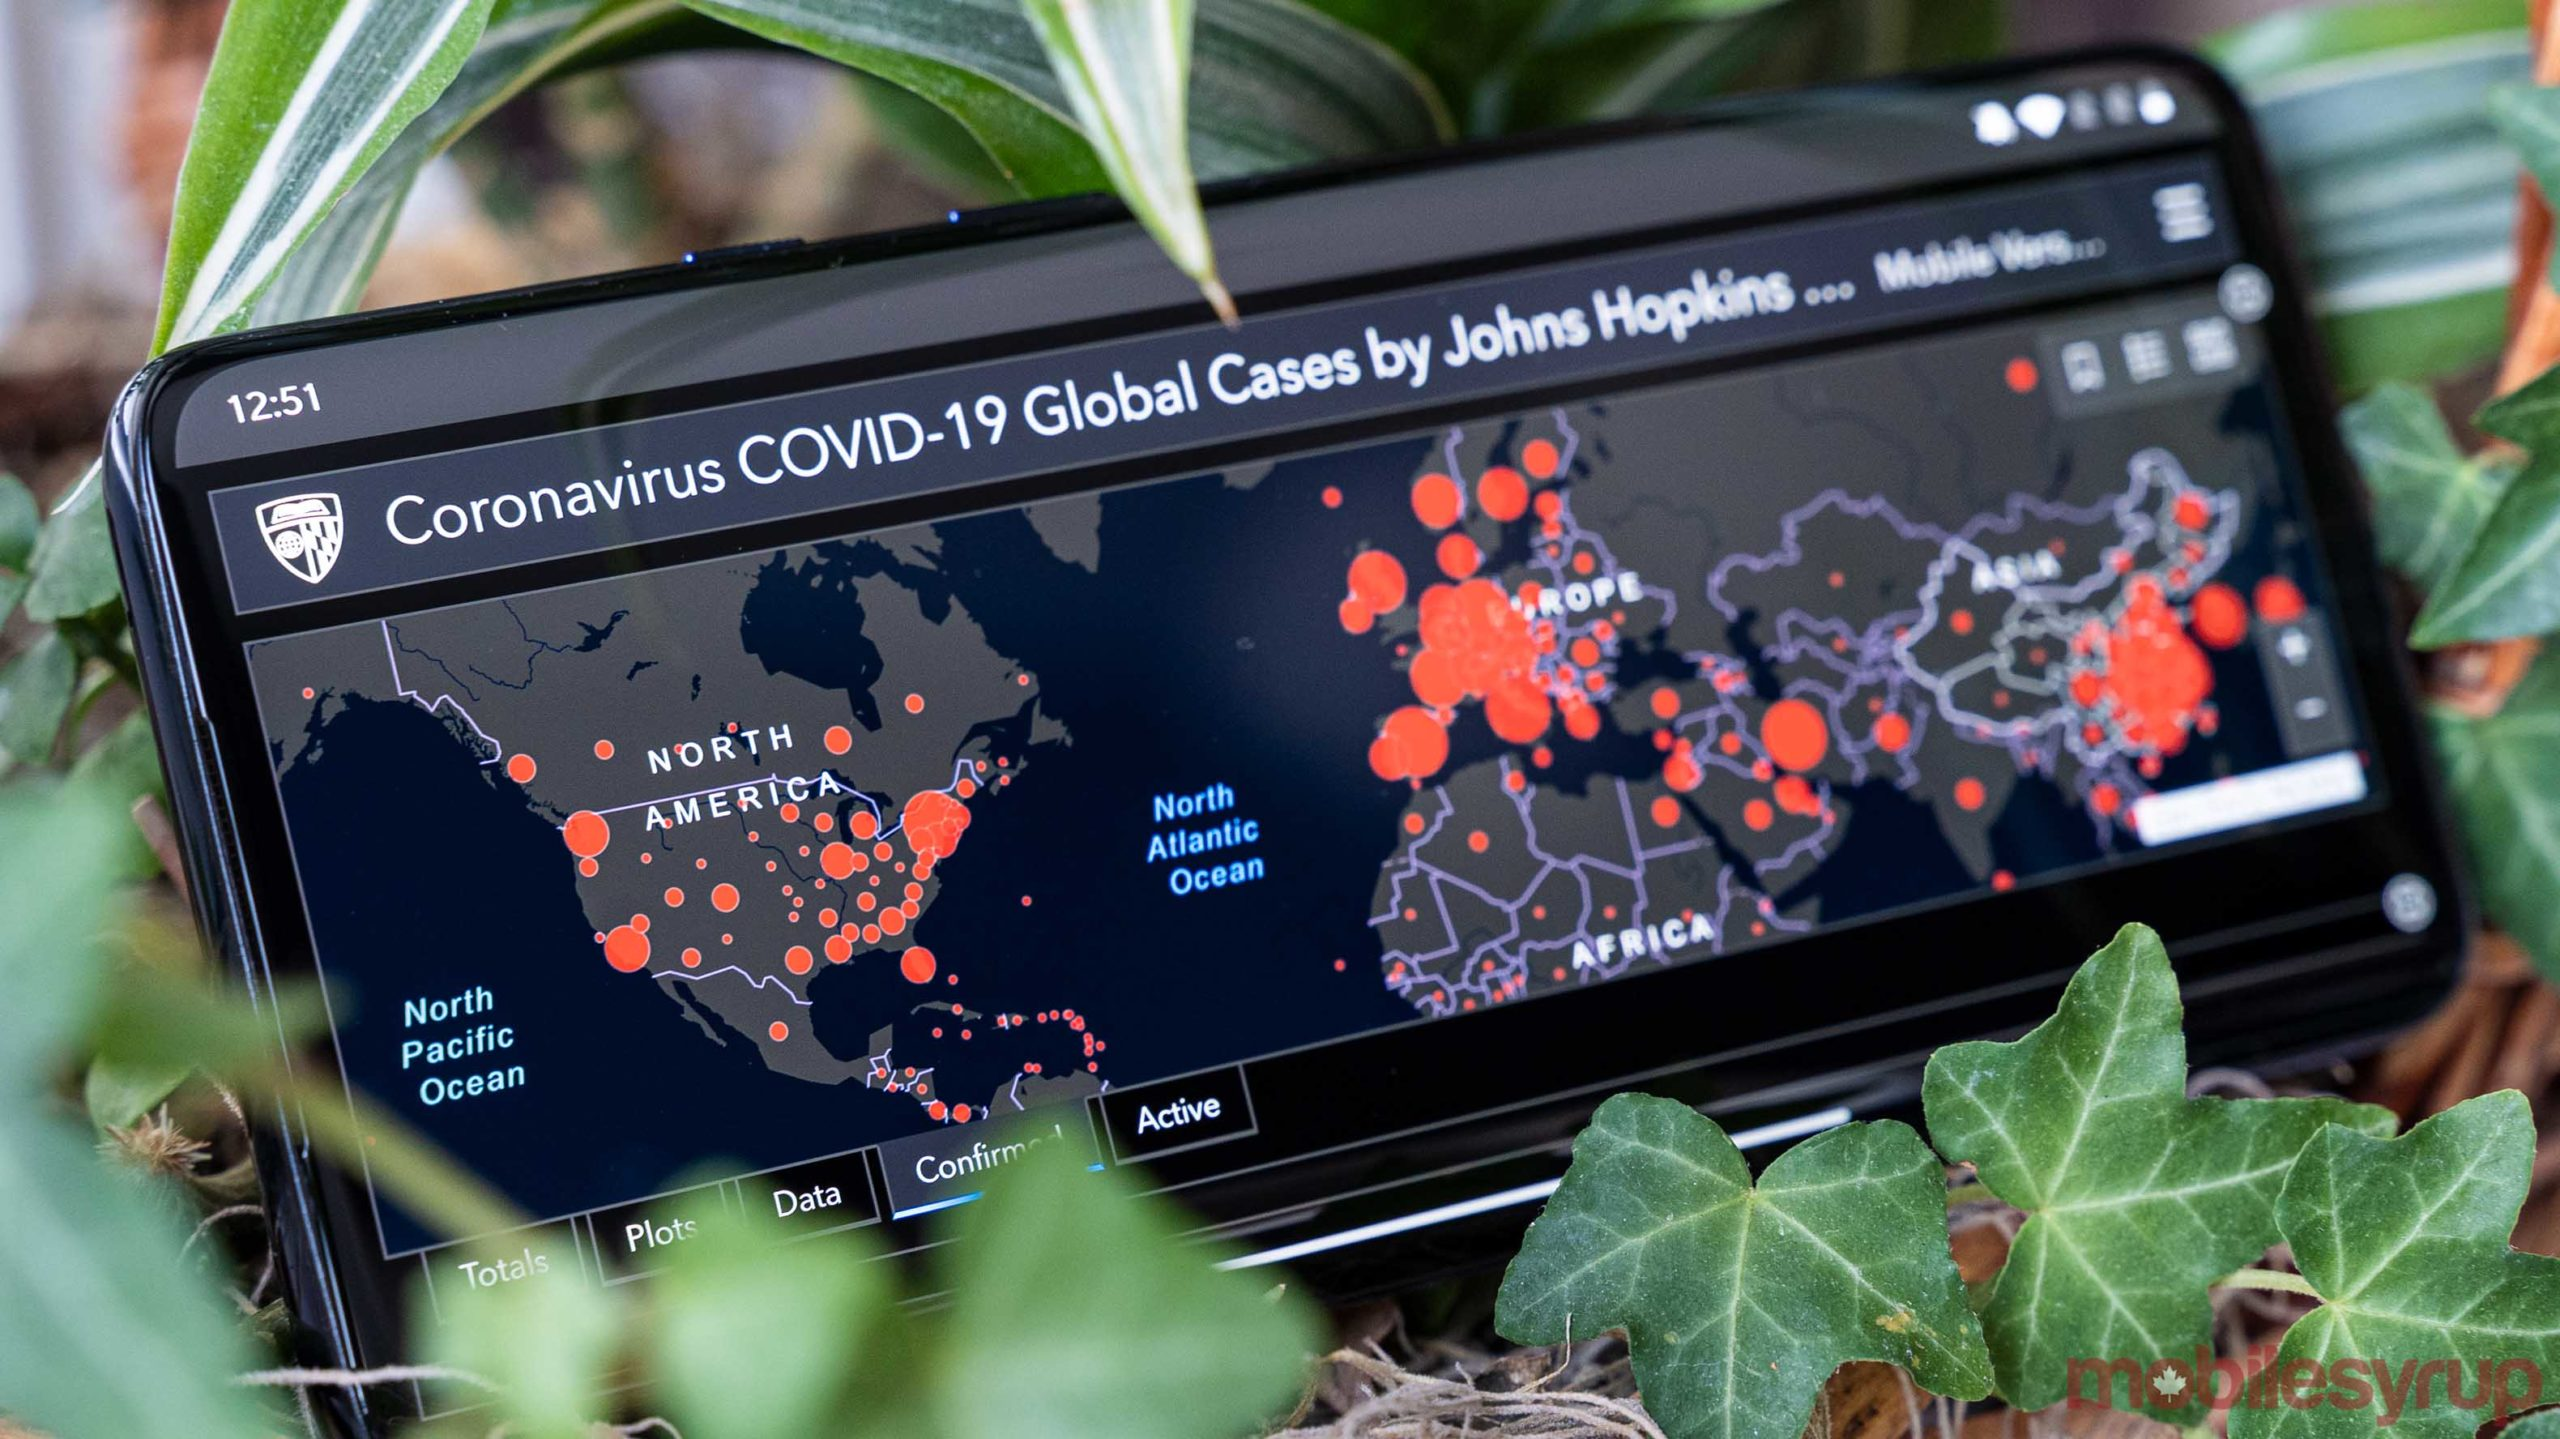 COVID-19 global cases